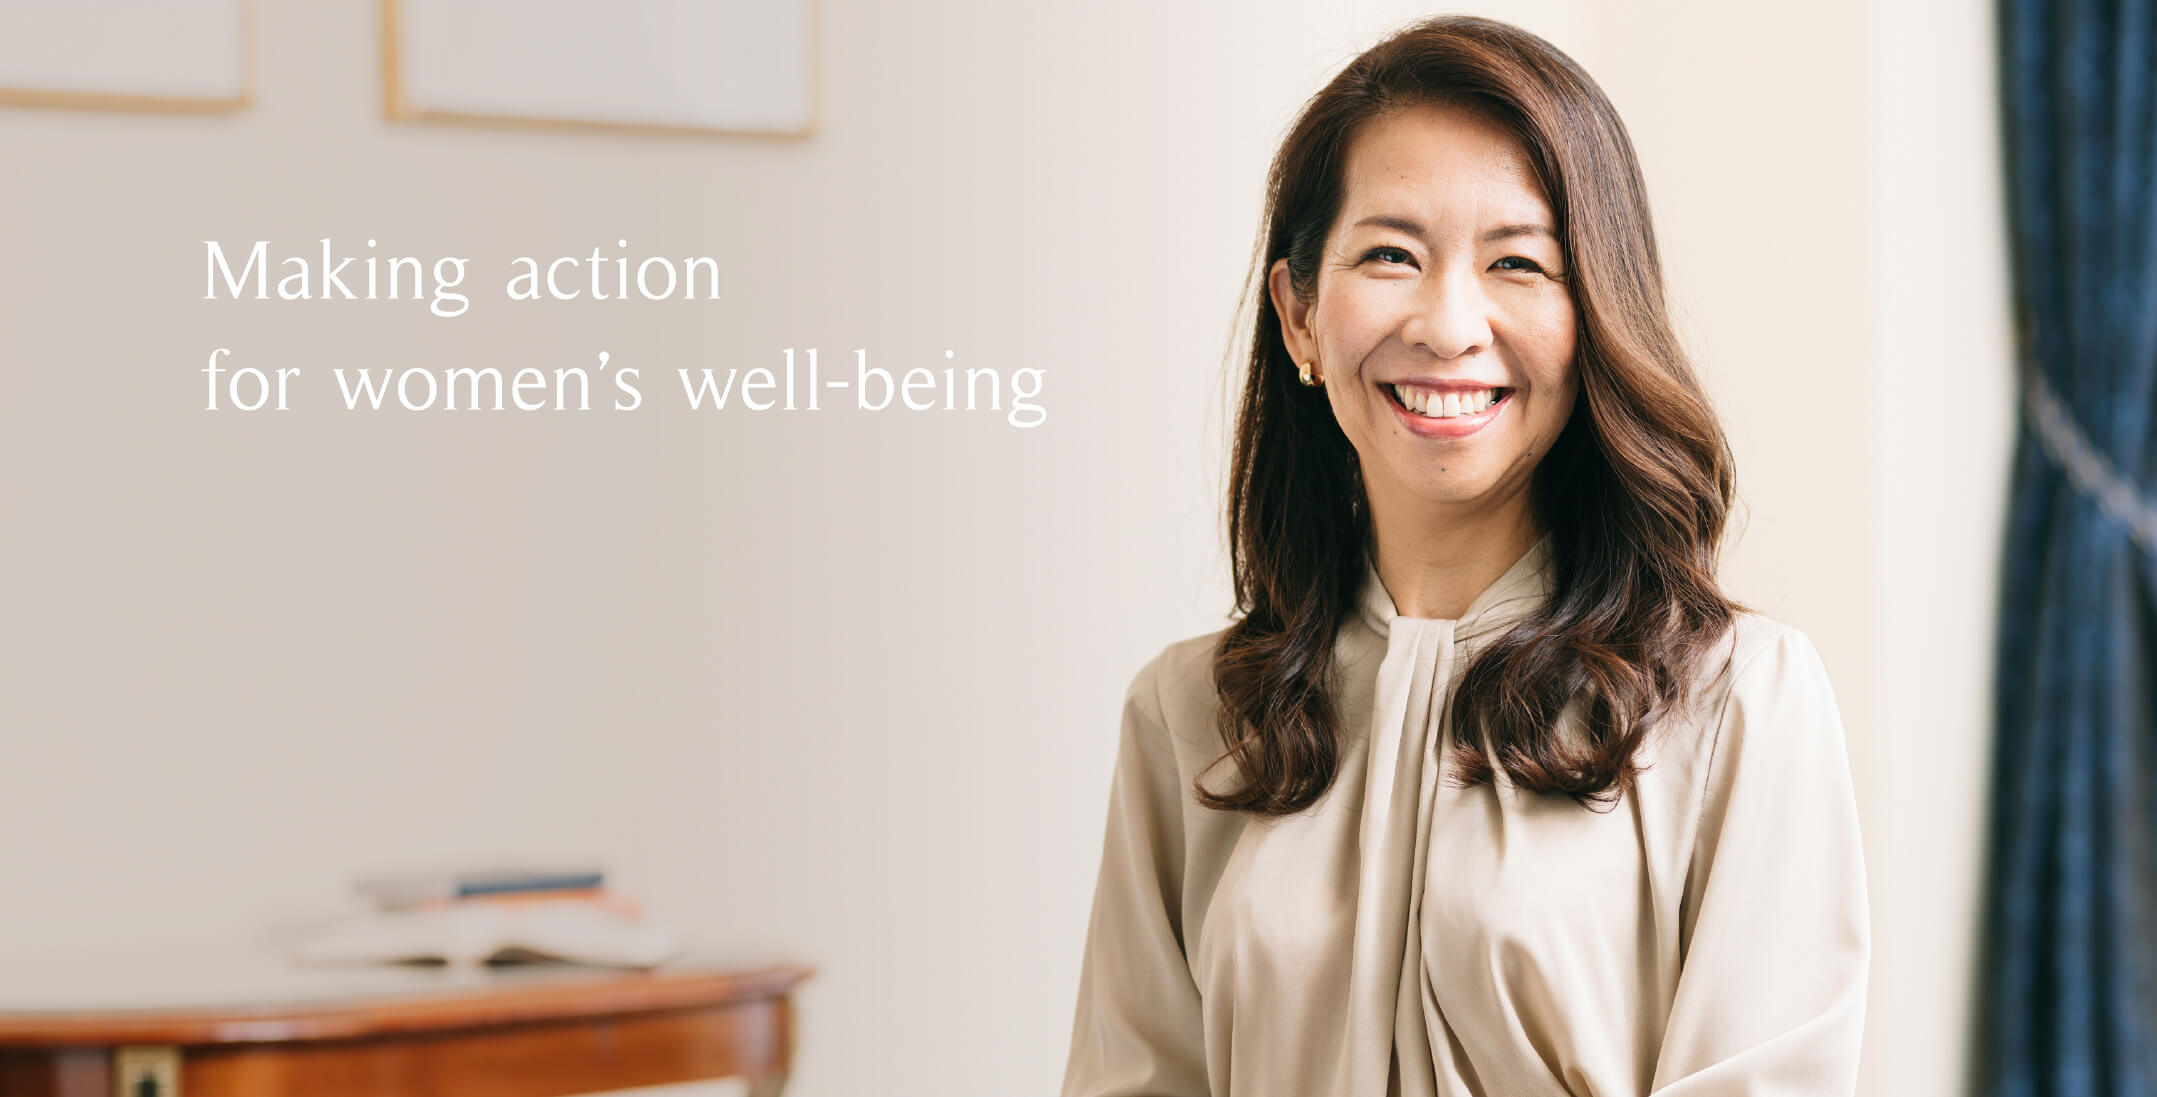 Making action for women's well-being